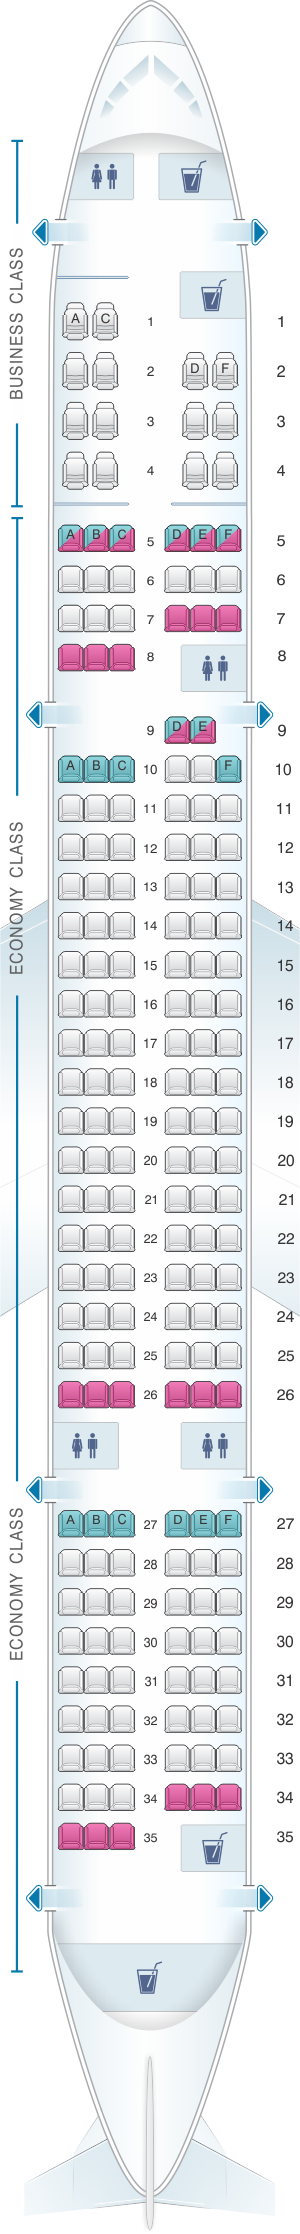 Seat map for US Airways Boeing B757 200 190pax